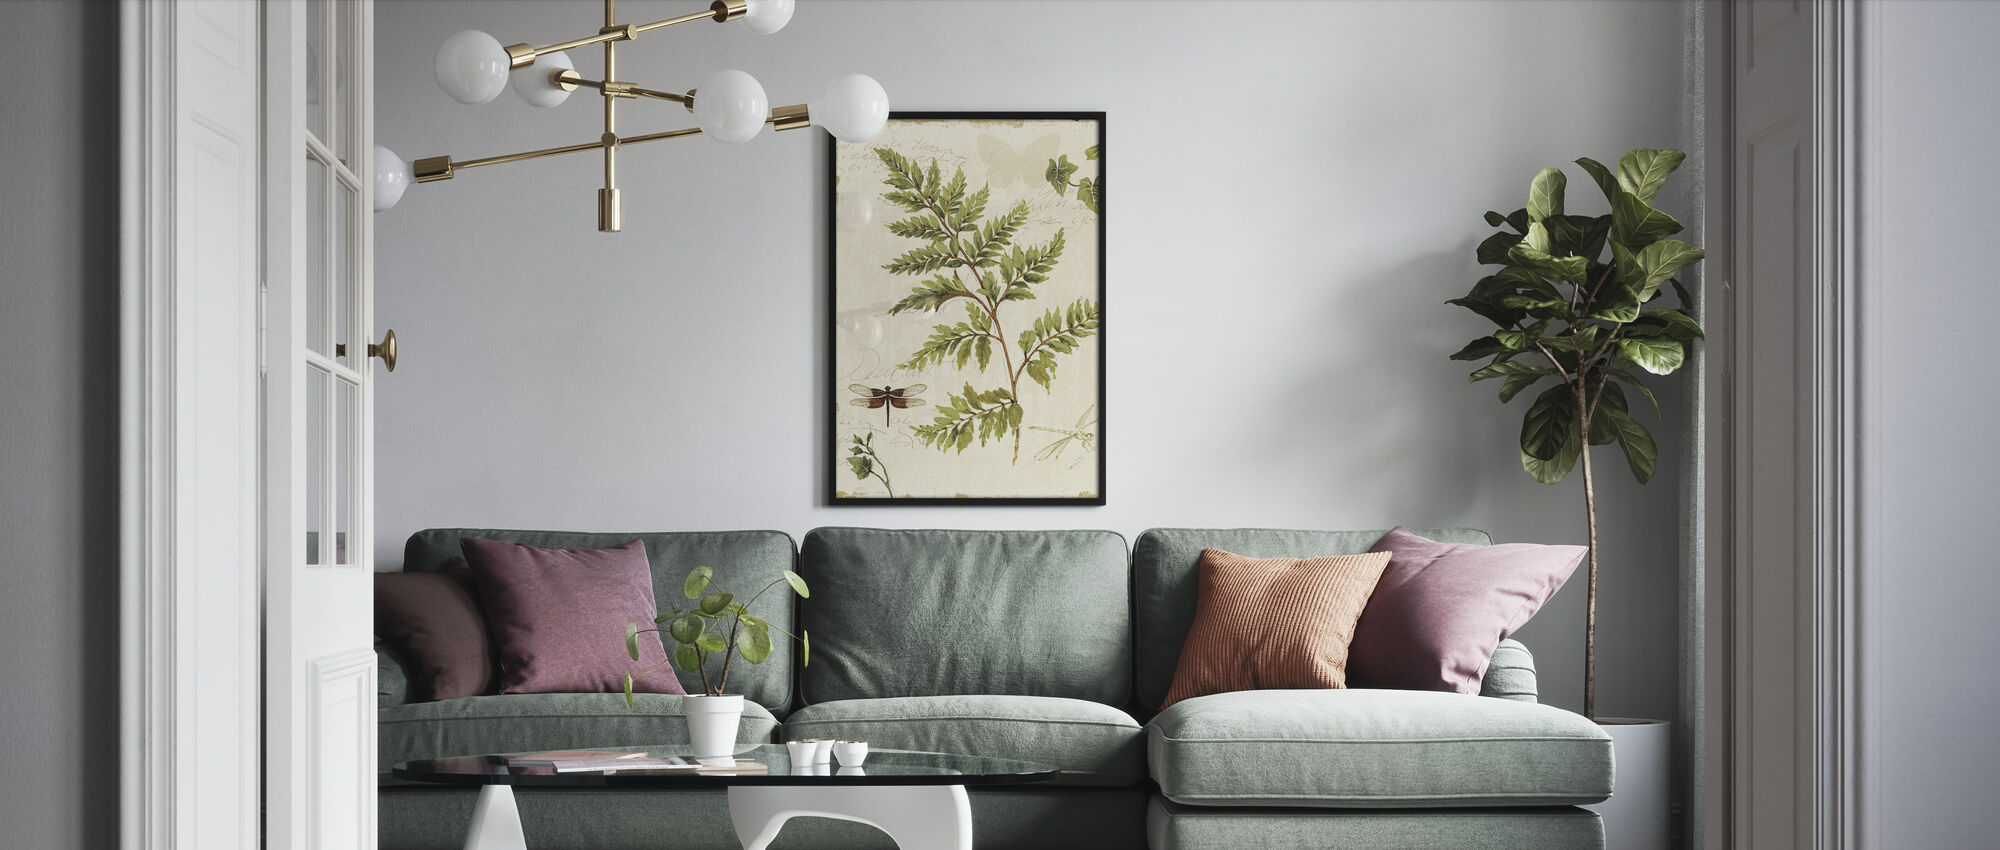 Ivies and Ferns - Framed print - Living Room